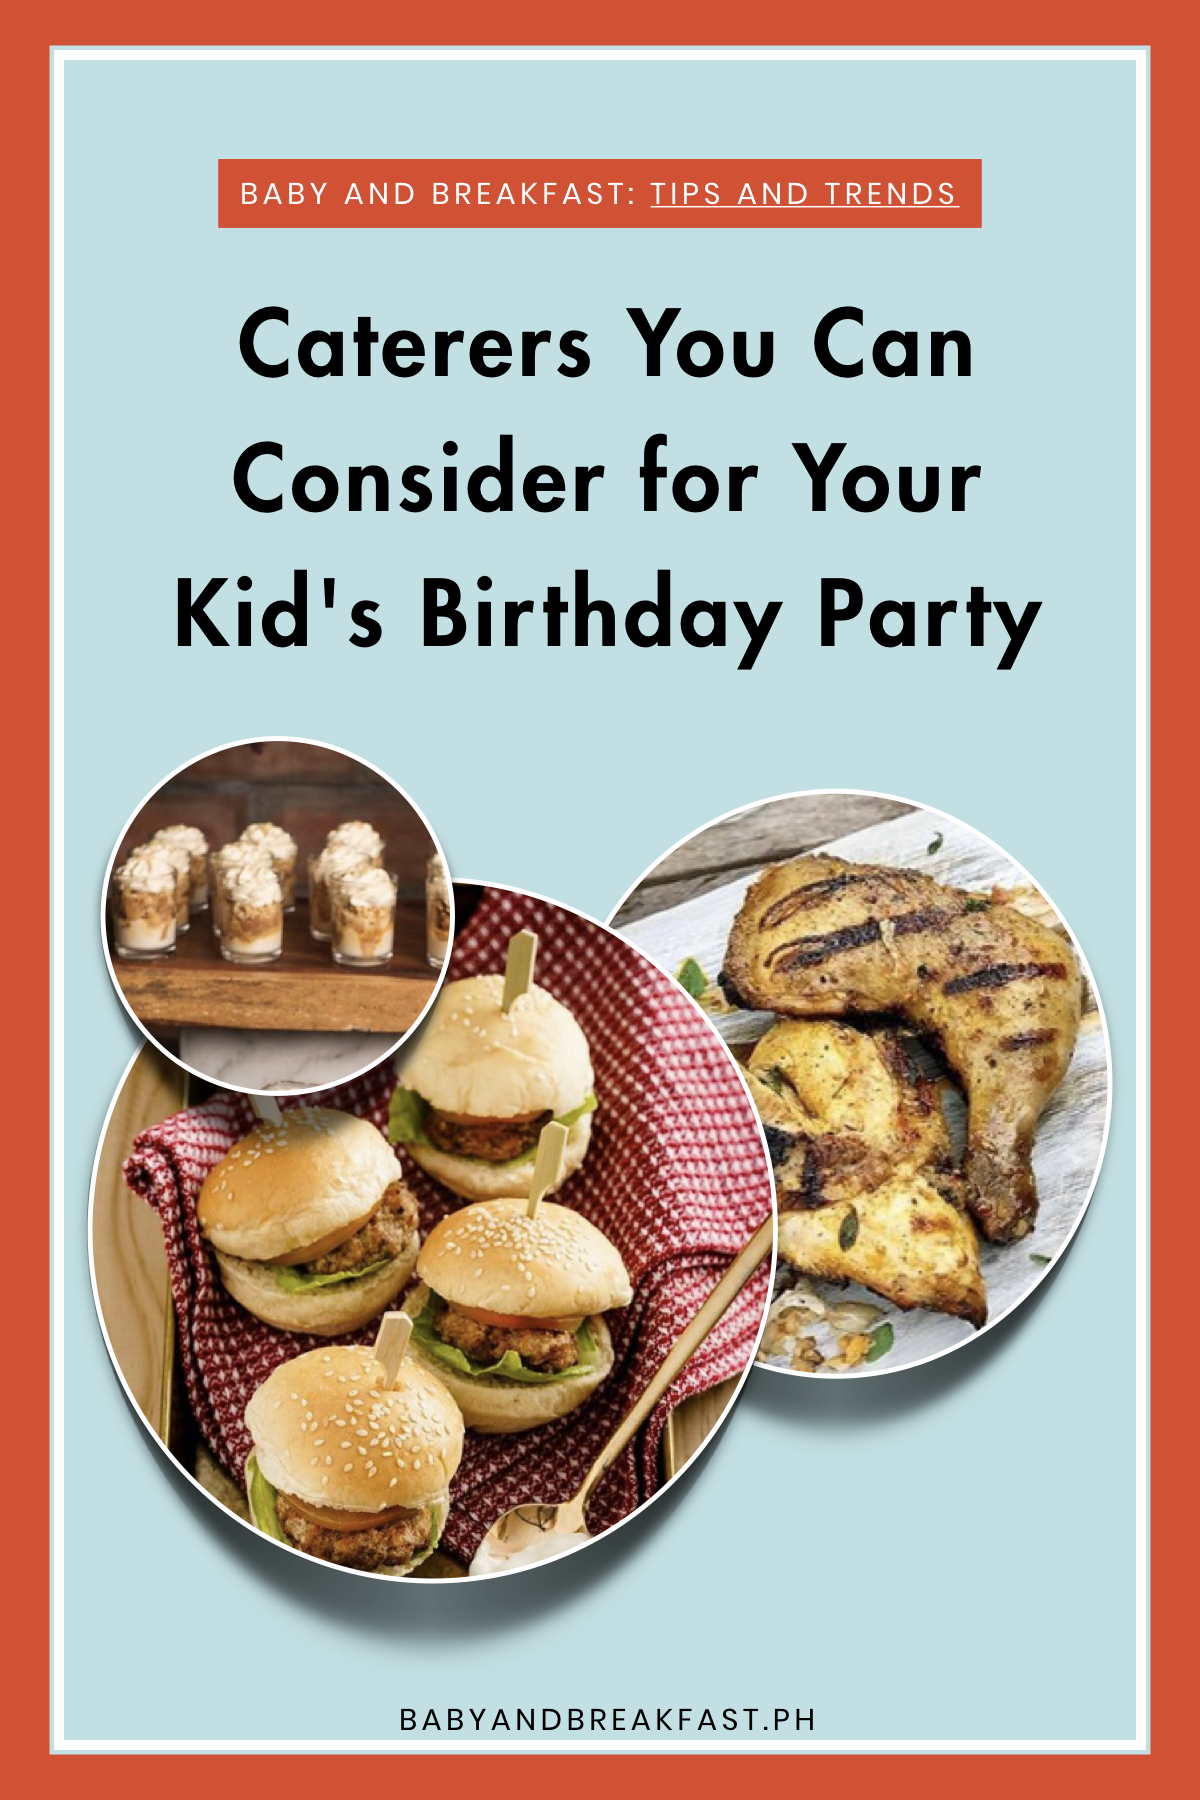 Baby and Breakfast: Tips and Trends Caterers You Can Consider for Your Kid's Birthday Party